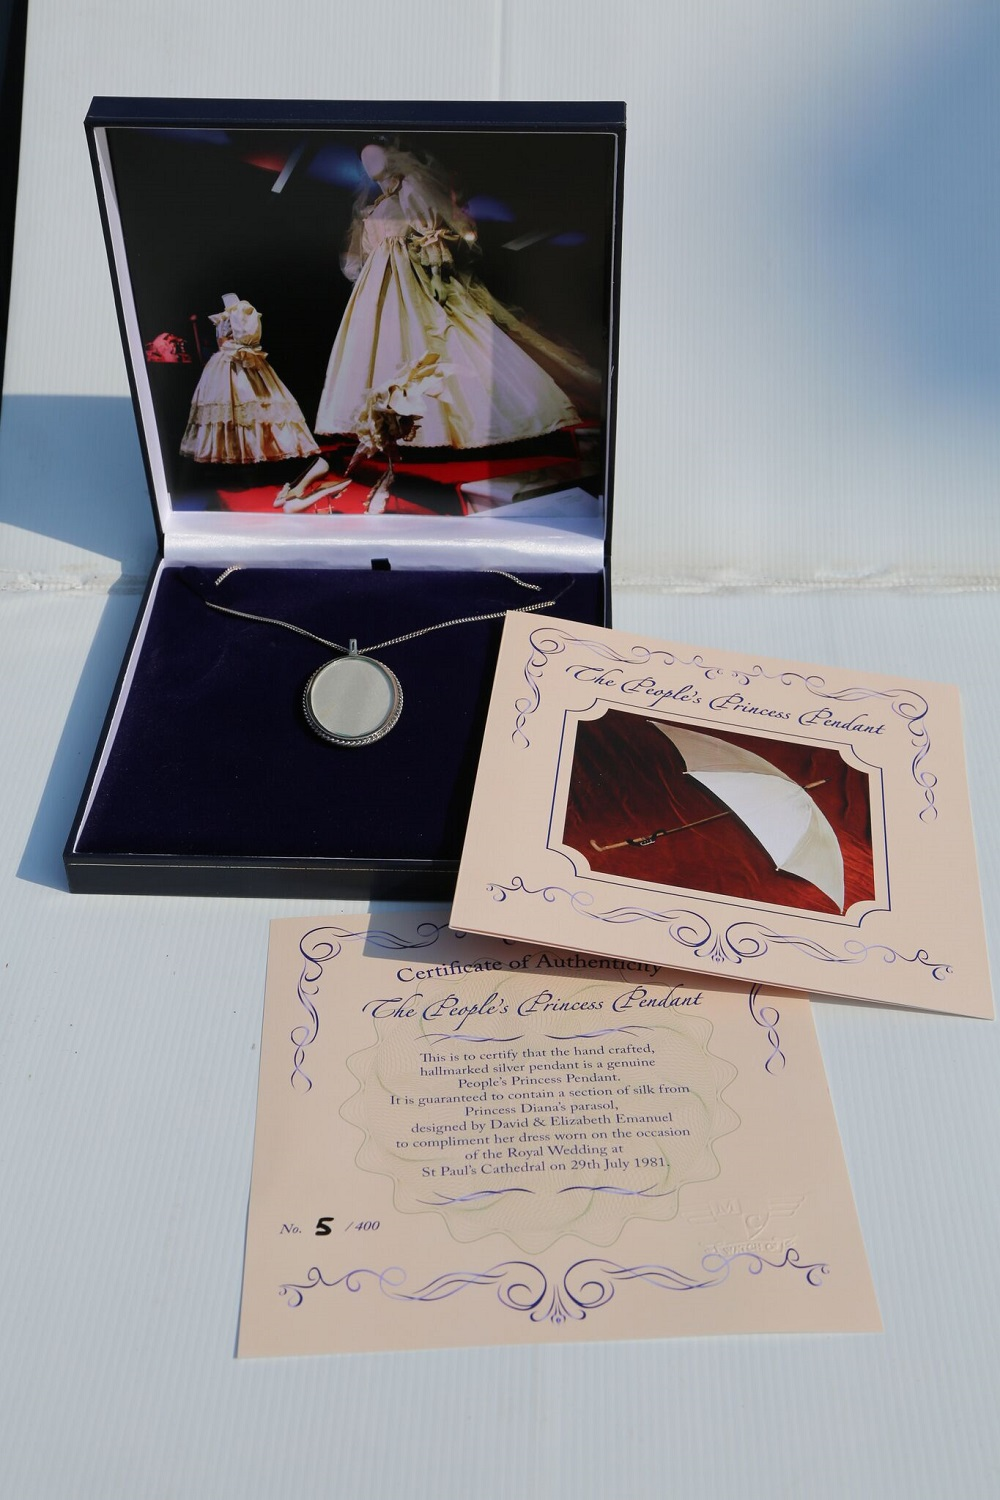 Lot 17 - Princess Diana: Silver Pendant containing a selection of silk taken from her parasol used on her